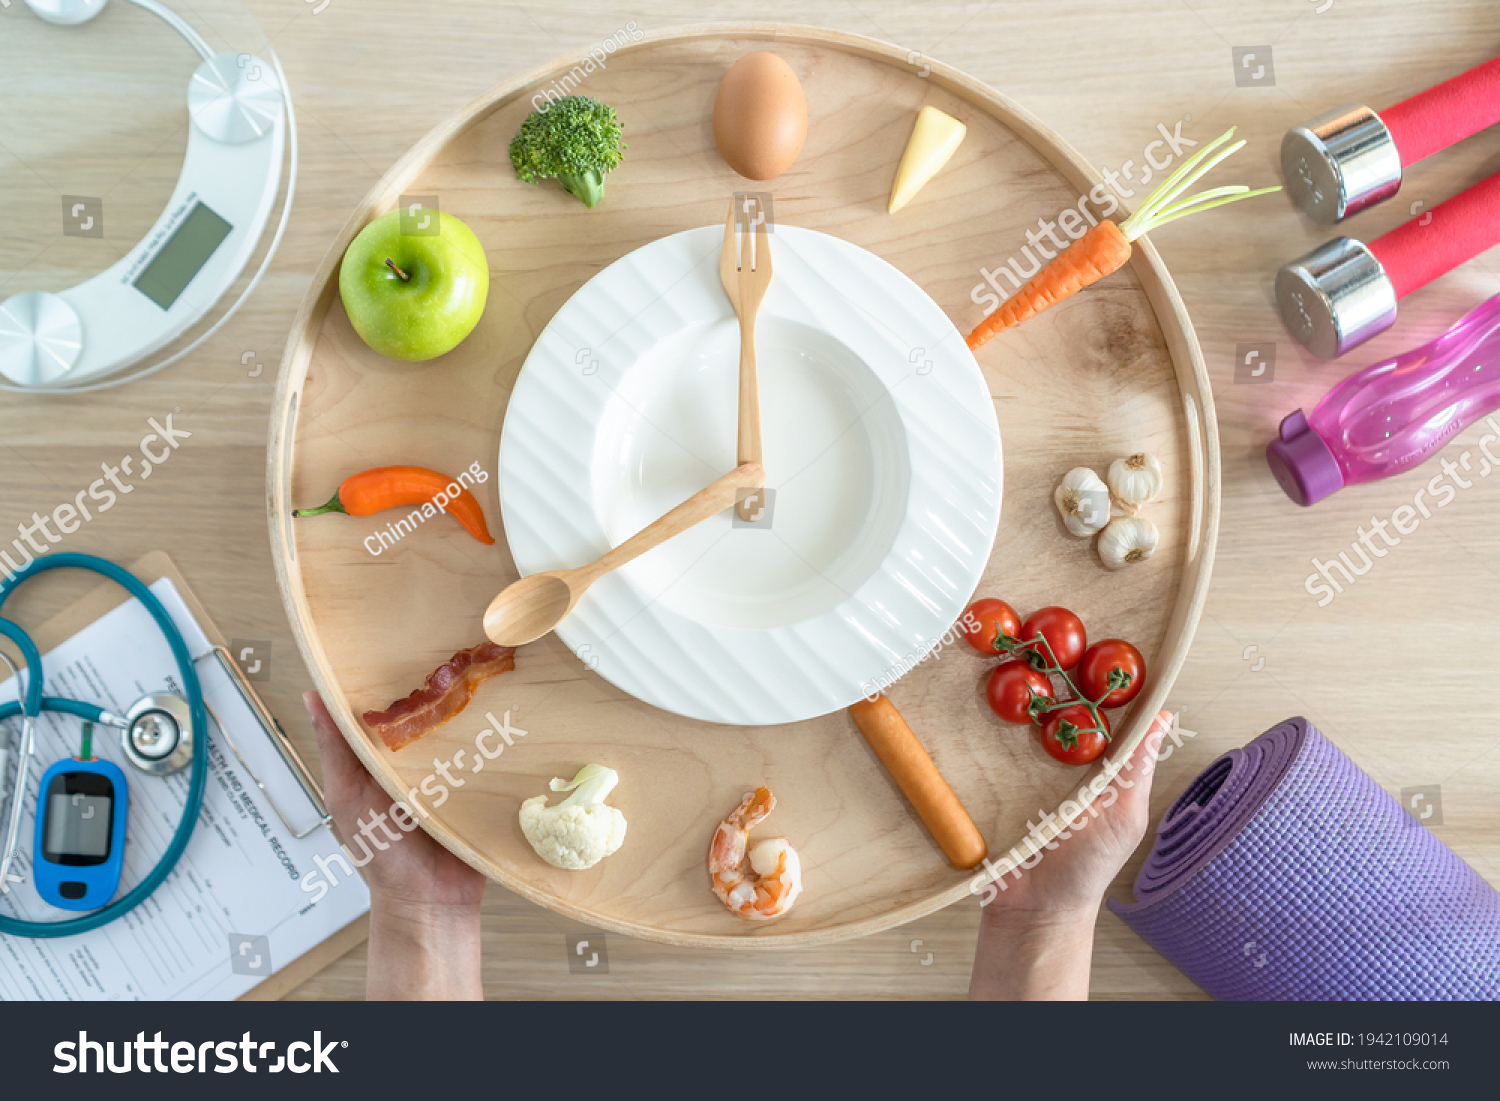 Intermittent fasting IF diet concept with 16:8 hour clock timer for skipping meal and eating keto low carb, high fat food meal healthy nutritional dish with gym exercise for body weight loss #1942109014